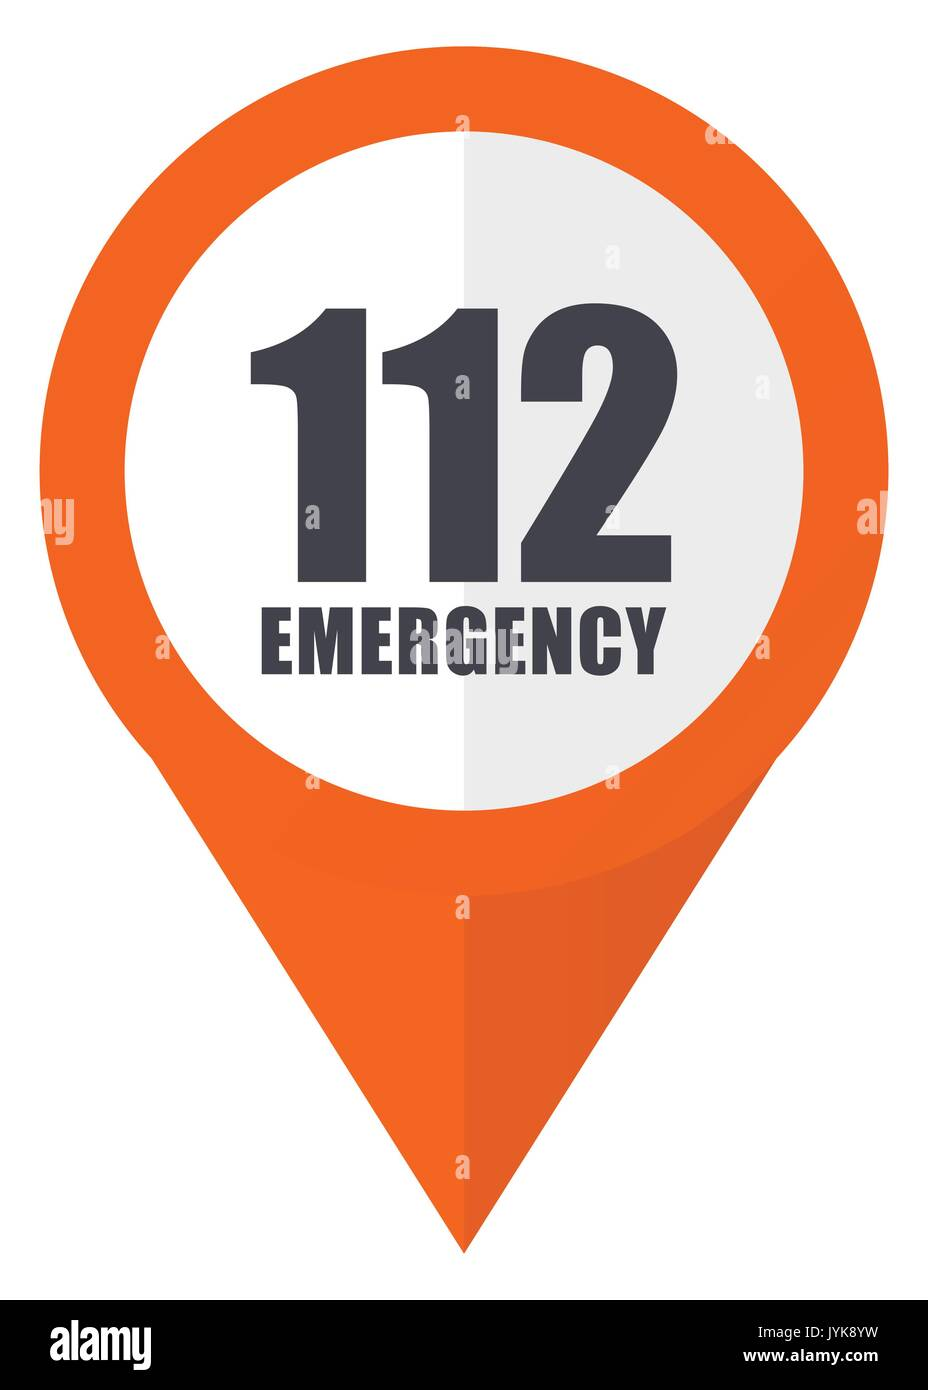 Number emergency 112 orange pointer vector icon in eps 10 isolated on white background. - Stock Image